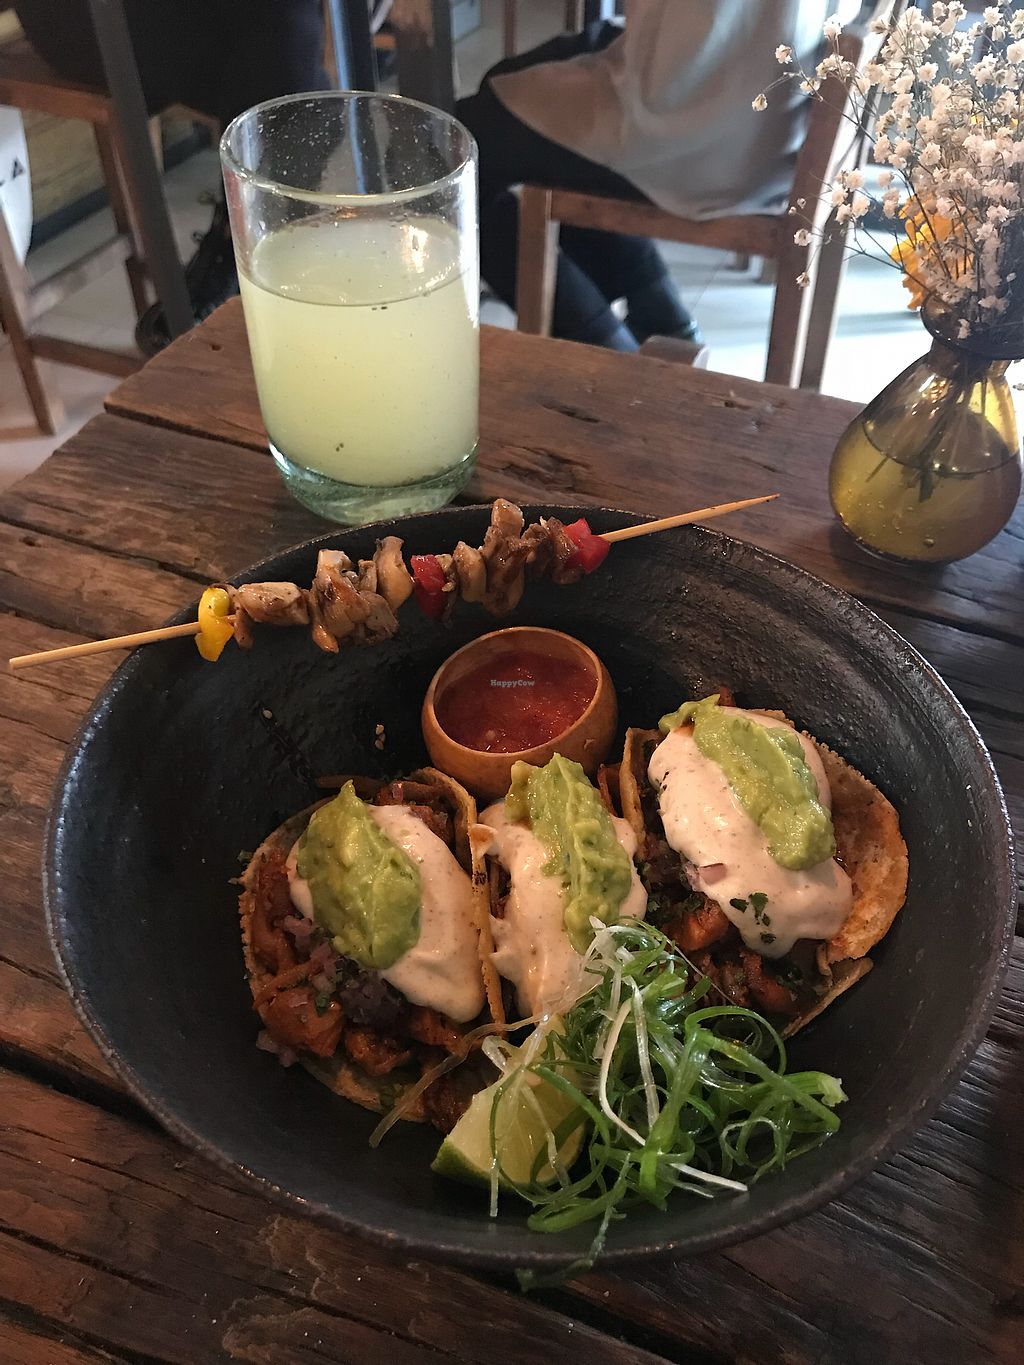 """Photo of Los Loosers  by <a href=""""/members/profile/MarieYu"""">MarieYu</a> <br/>Tacos al pastor  <br/> November 5, 2017  - <a href='/contact/abuse/image/39267/322305'>Report</a>"""